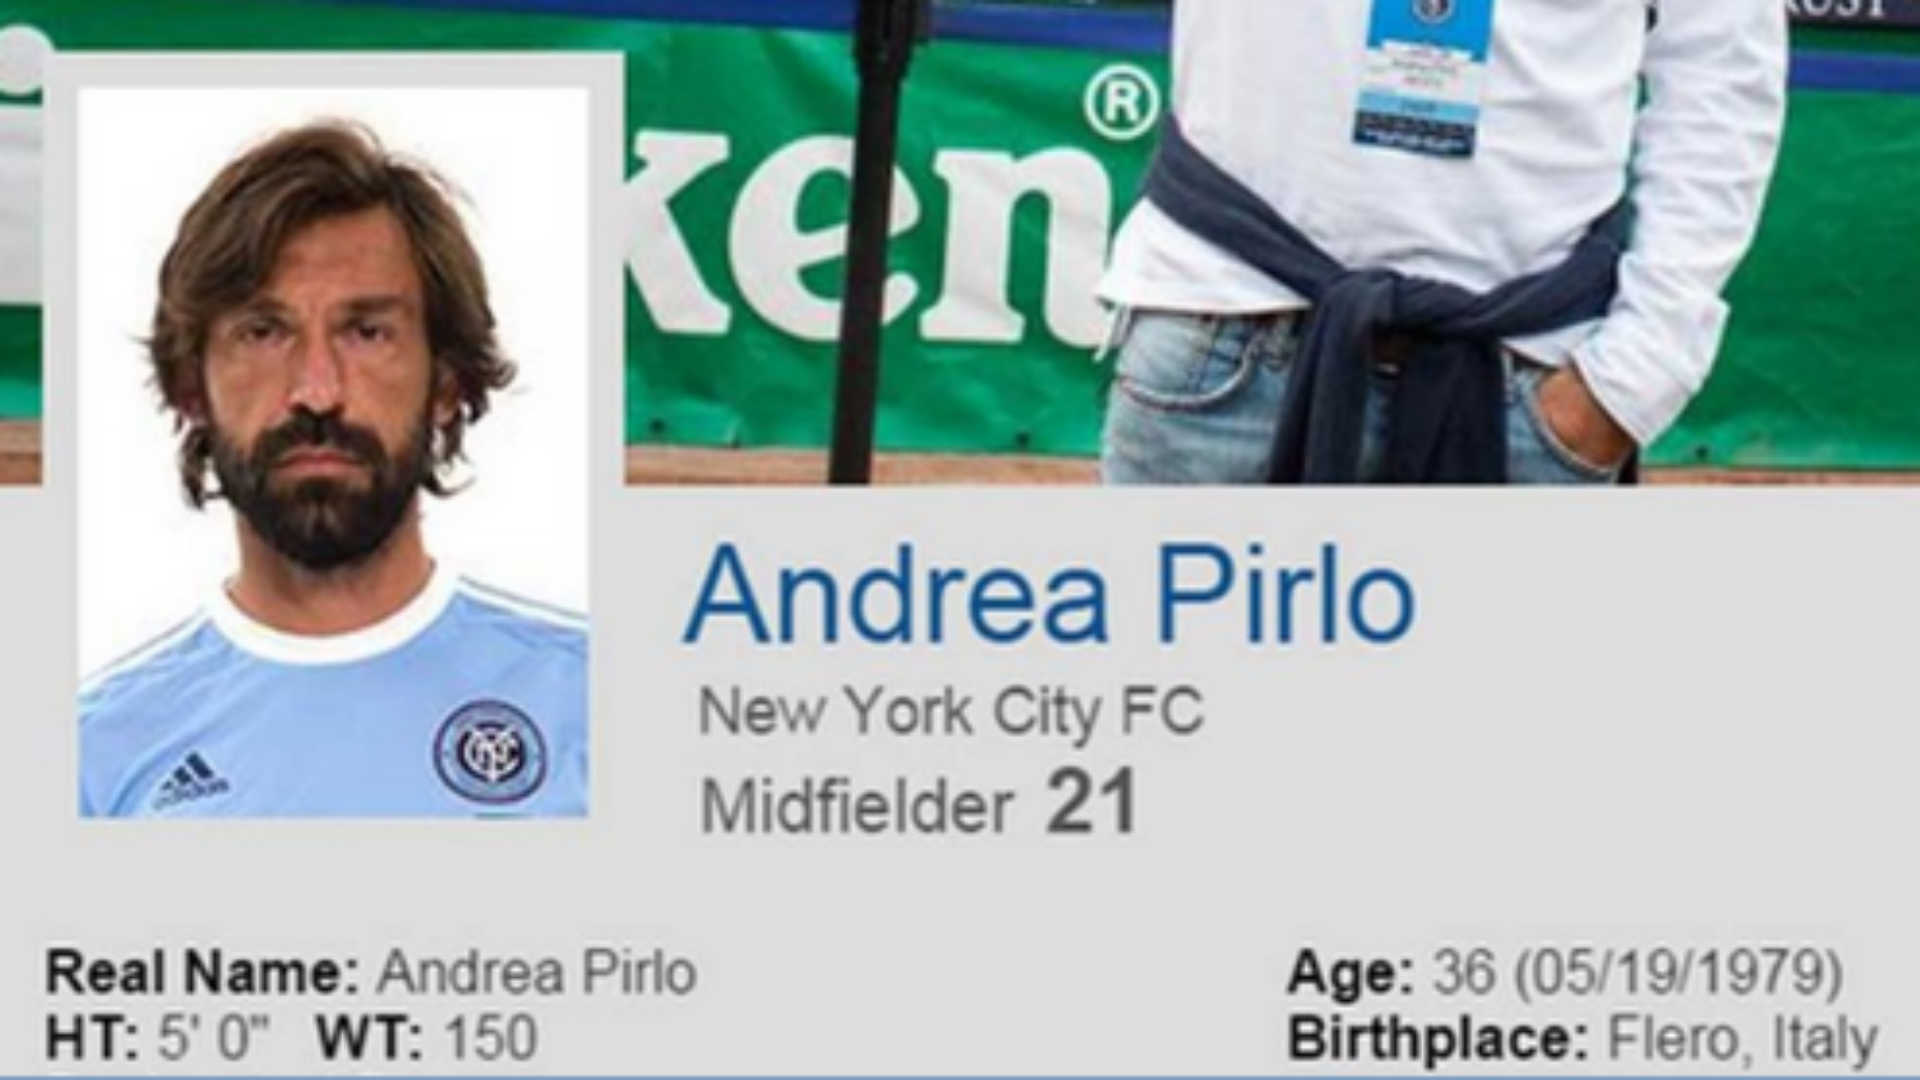 Andrea Pirlo's signing with NYCFC hinted at by team's website